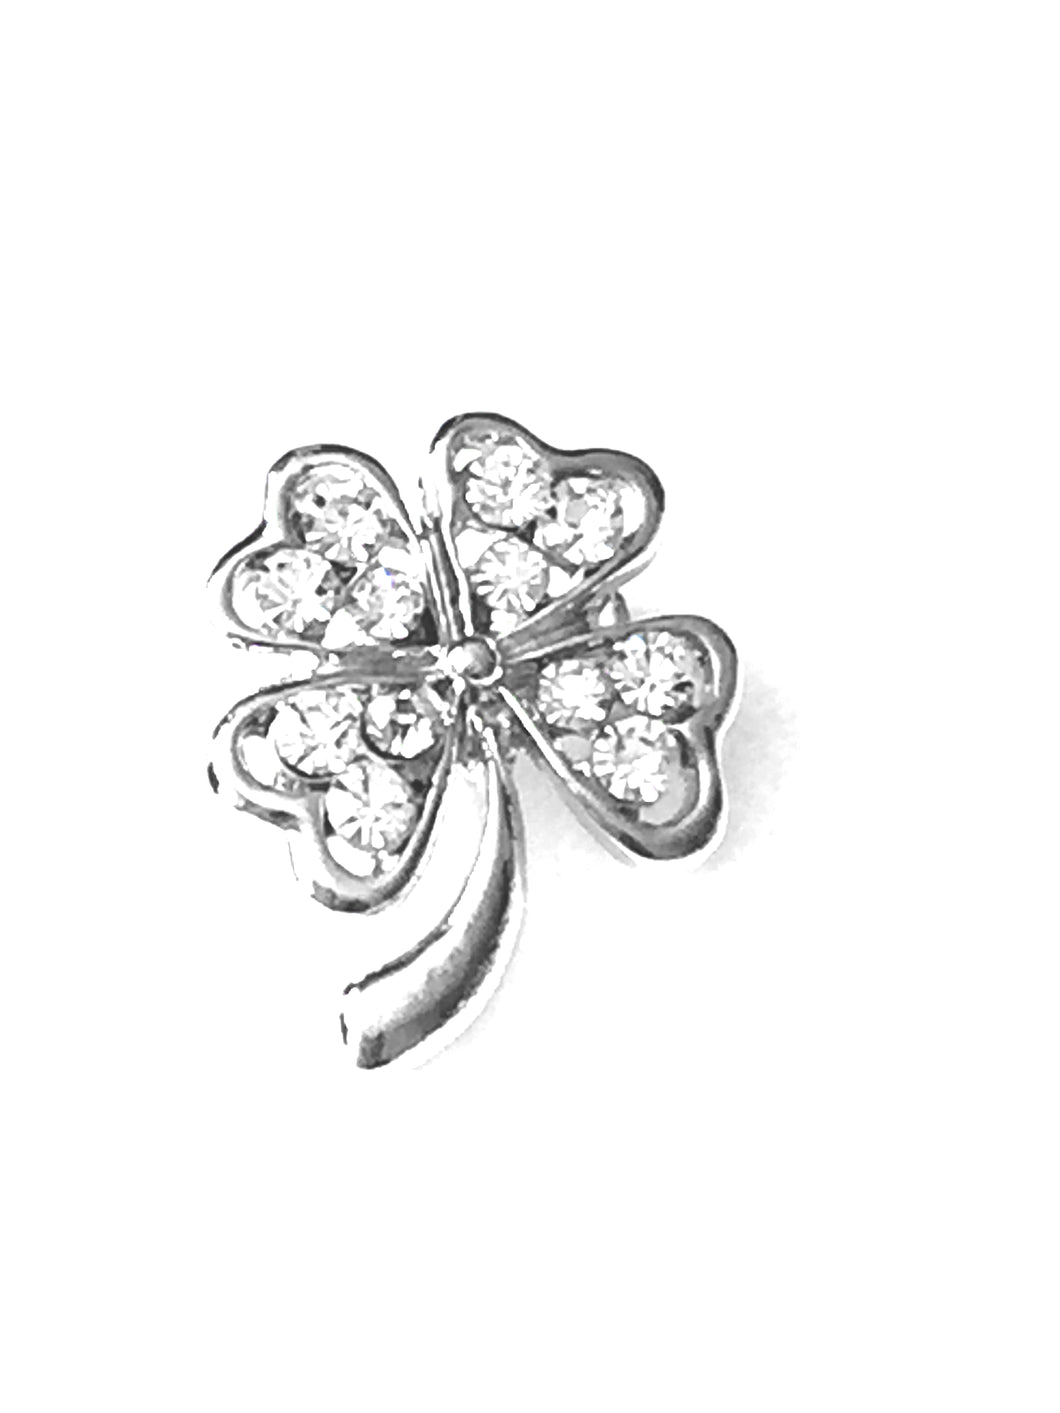 Four Leaf Clover Brooch, A great gift for St. Patrick's Day